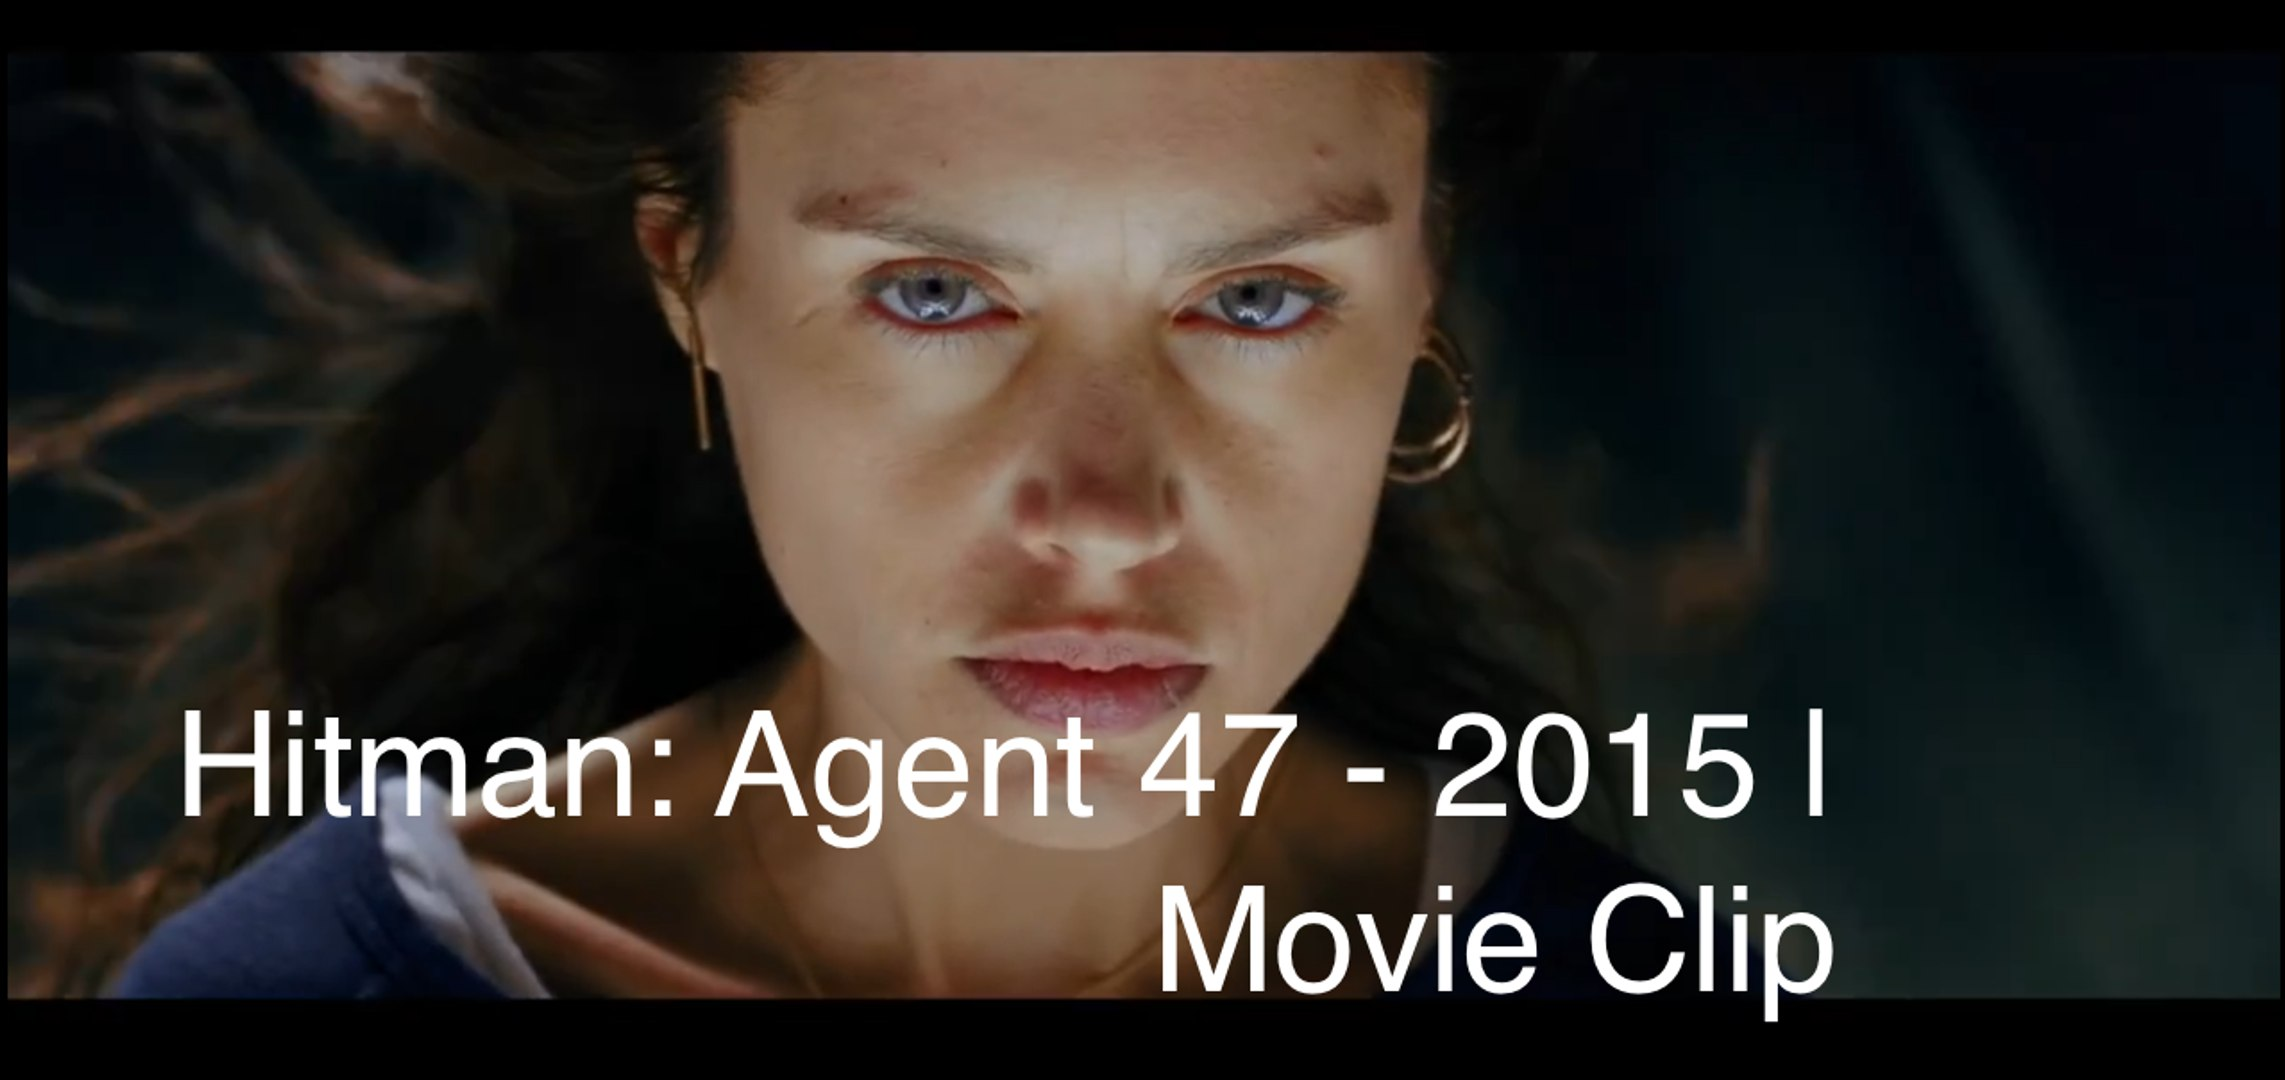 Hitman Agent 47 2015 Movie Clip Video Dailymotion